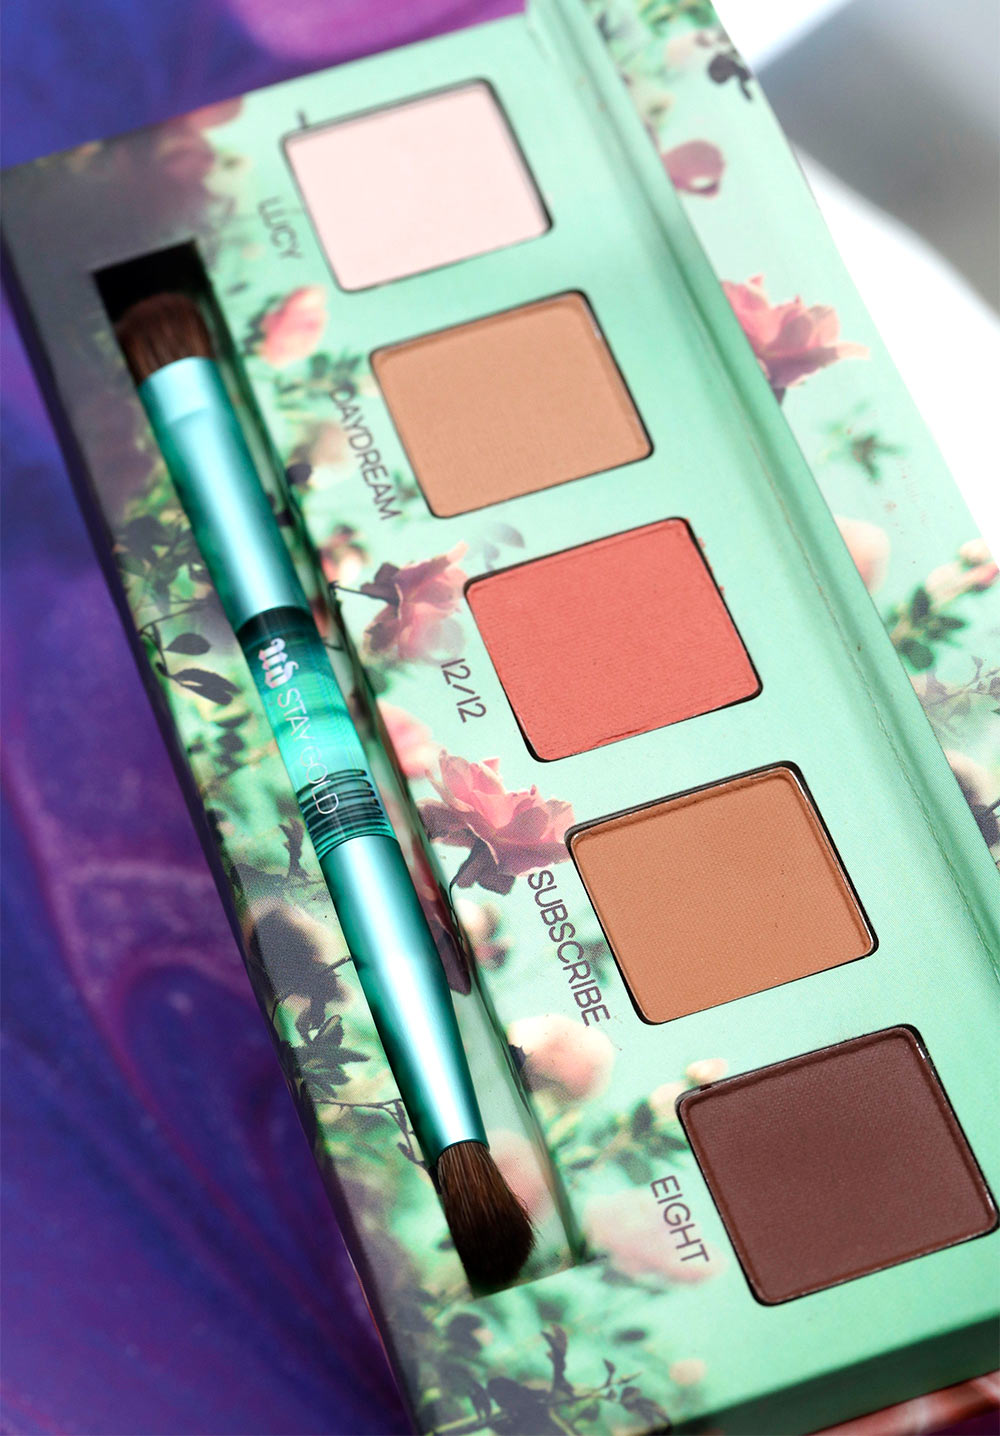 Makeup Blog Eyeshadow Palette The Urban Decay X Kristen Leanne Collection Daydream